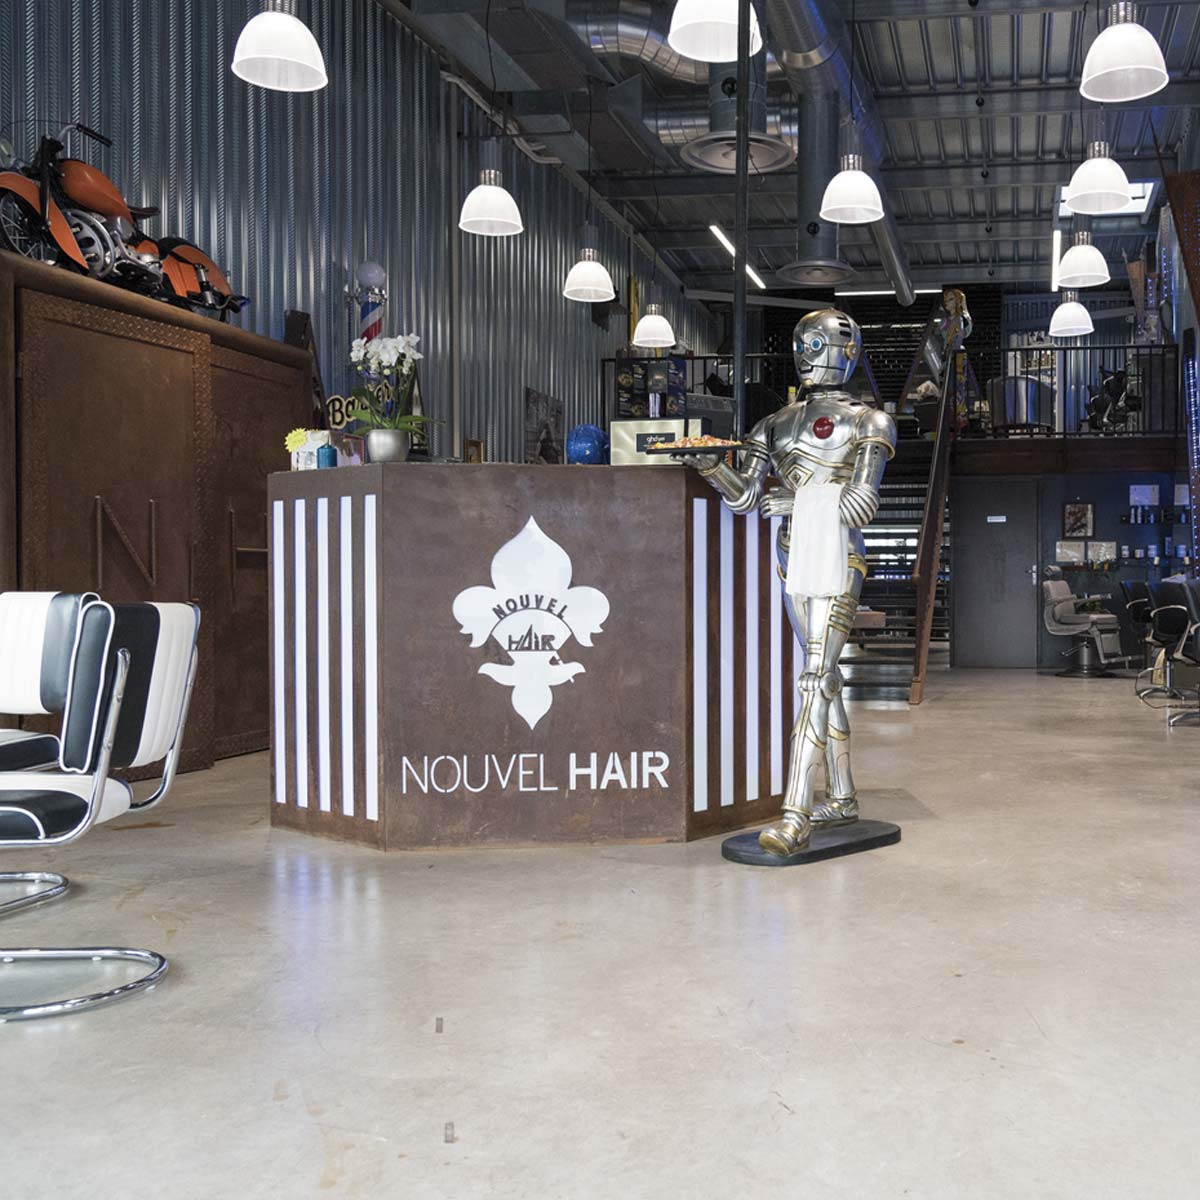 salon-de-coiffure-franchise-groupe-ppd-nouvel-hair-06